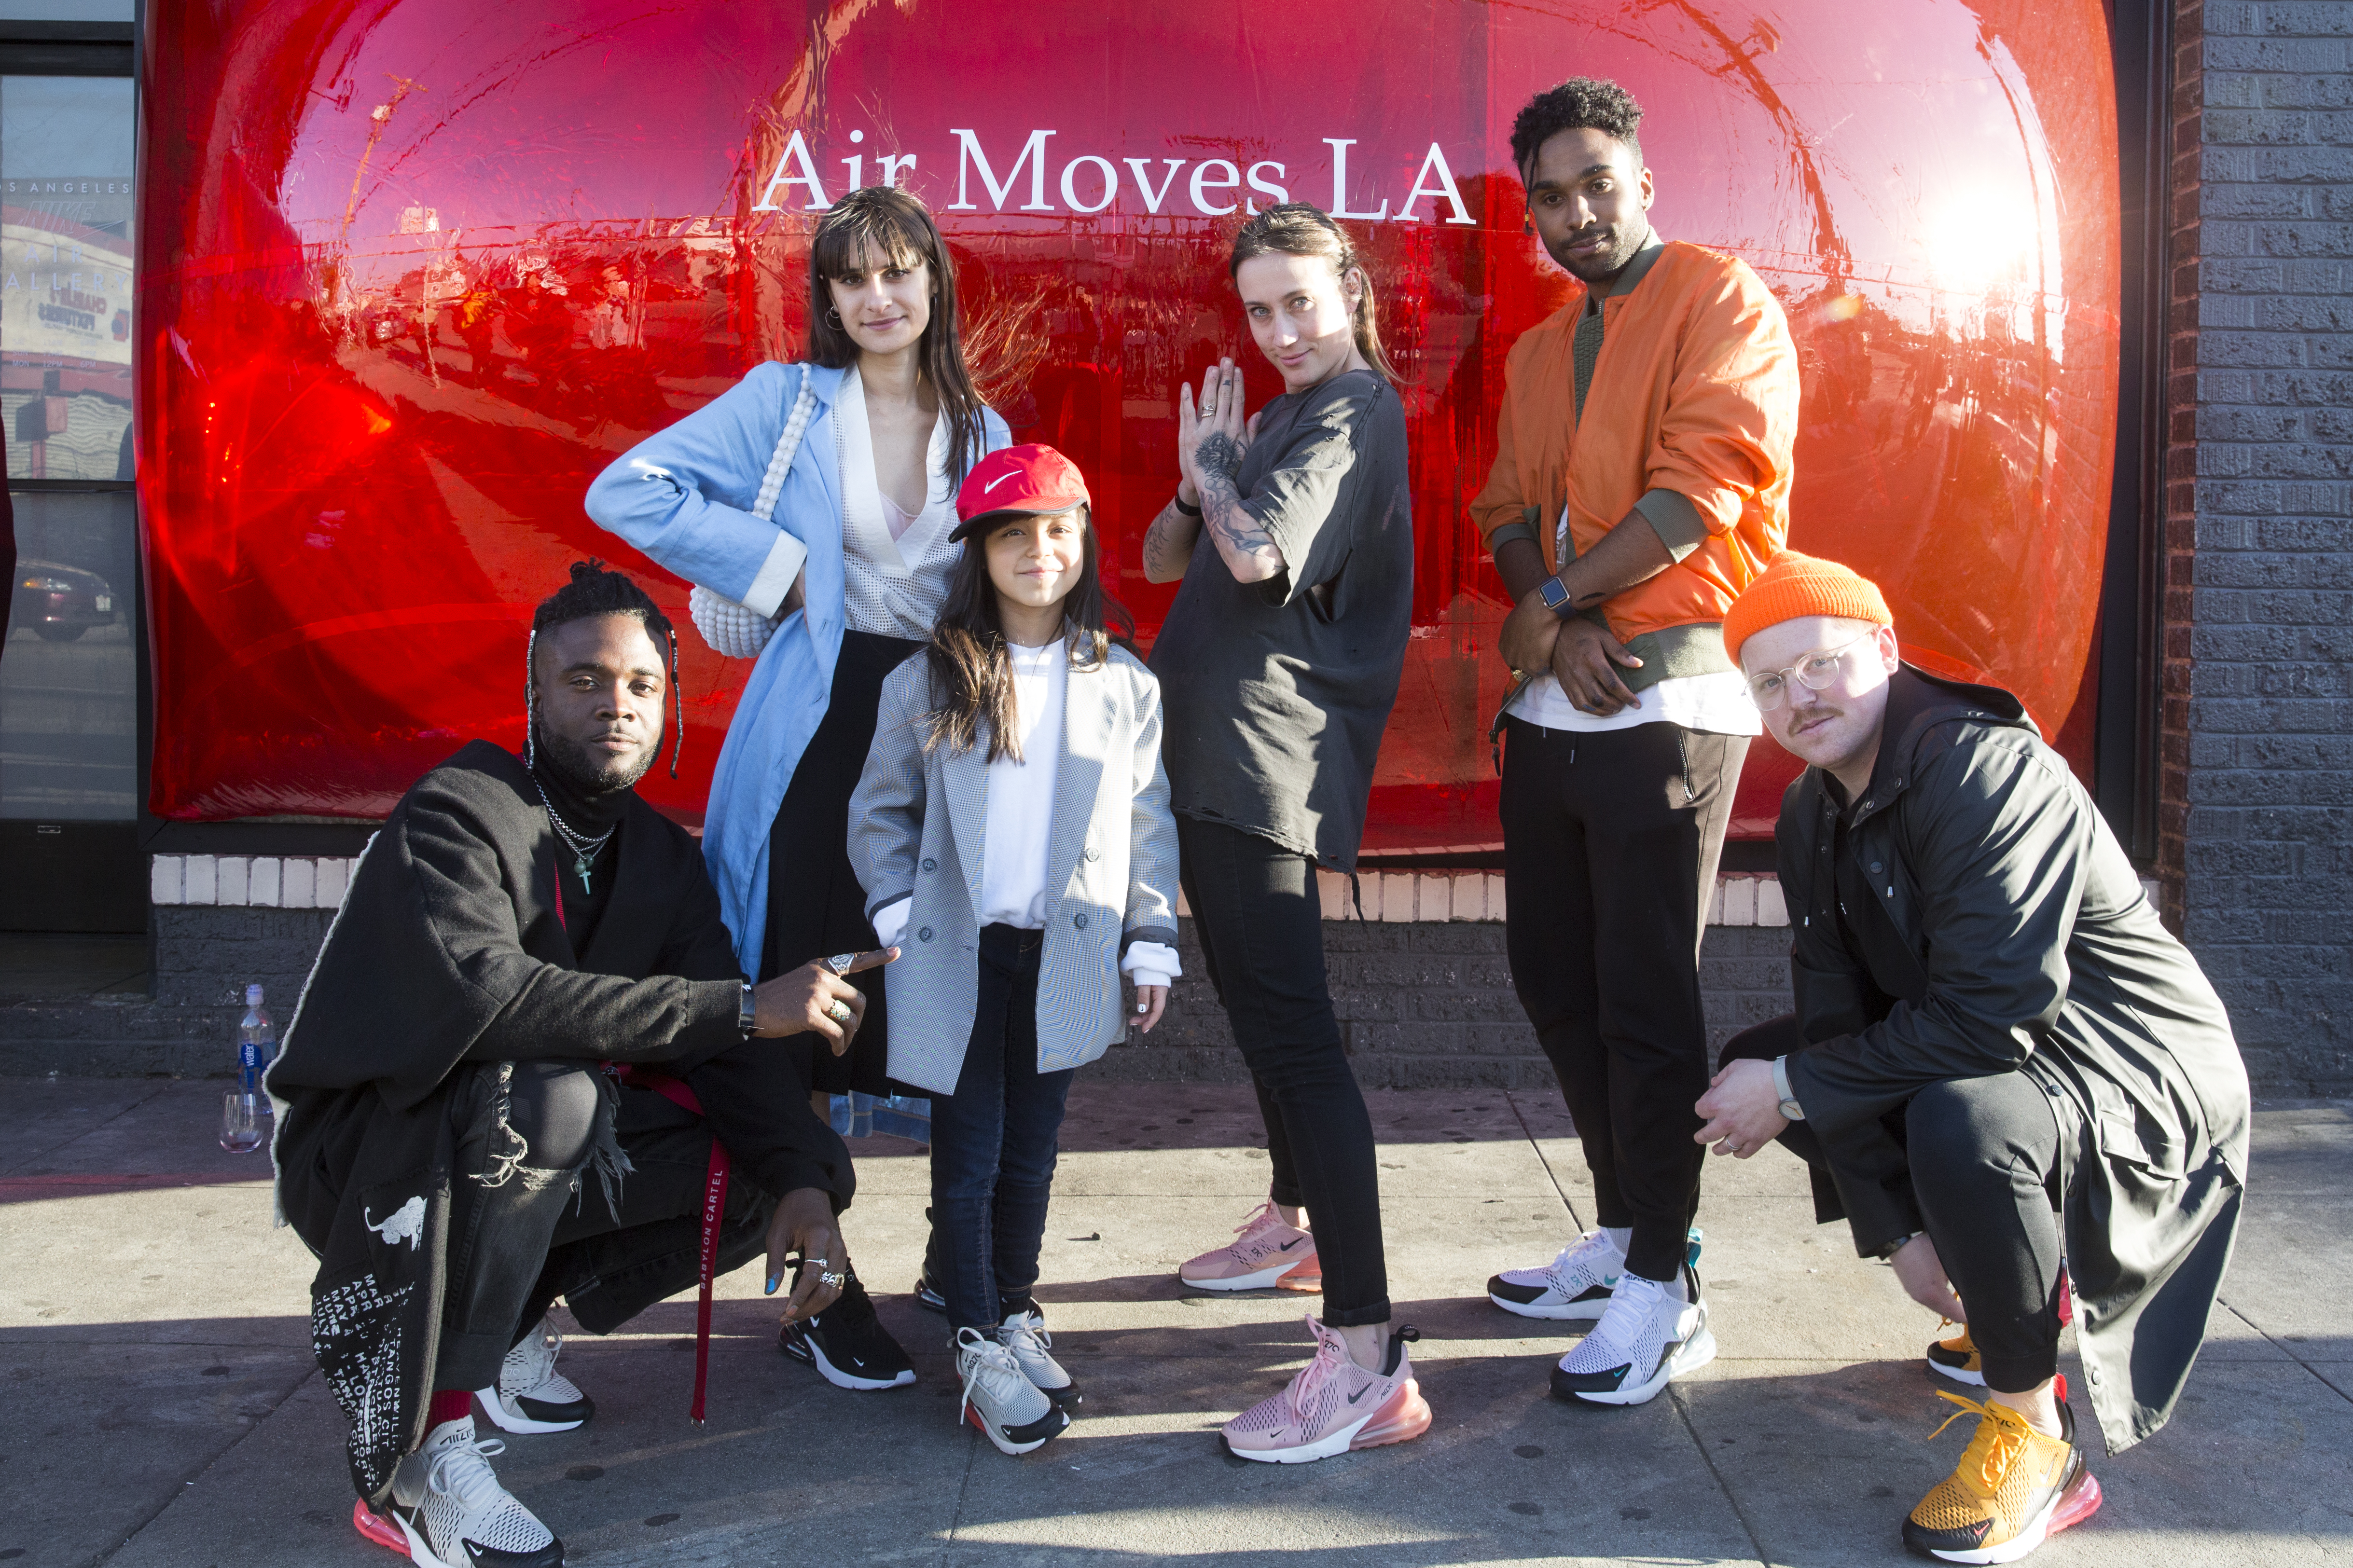 newest ced91 71752 reduced nike celebrates air max day sneakernews fd203 b54da uk the nike air  gallery is currently curating air moves la featuring work from these  talented